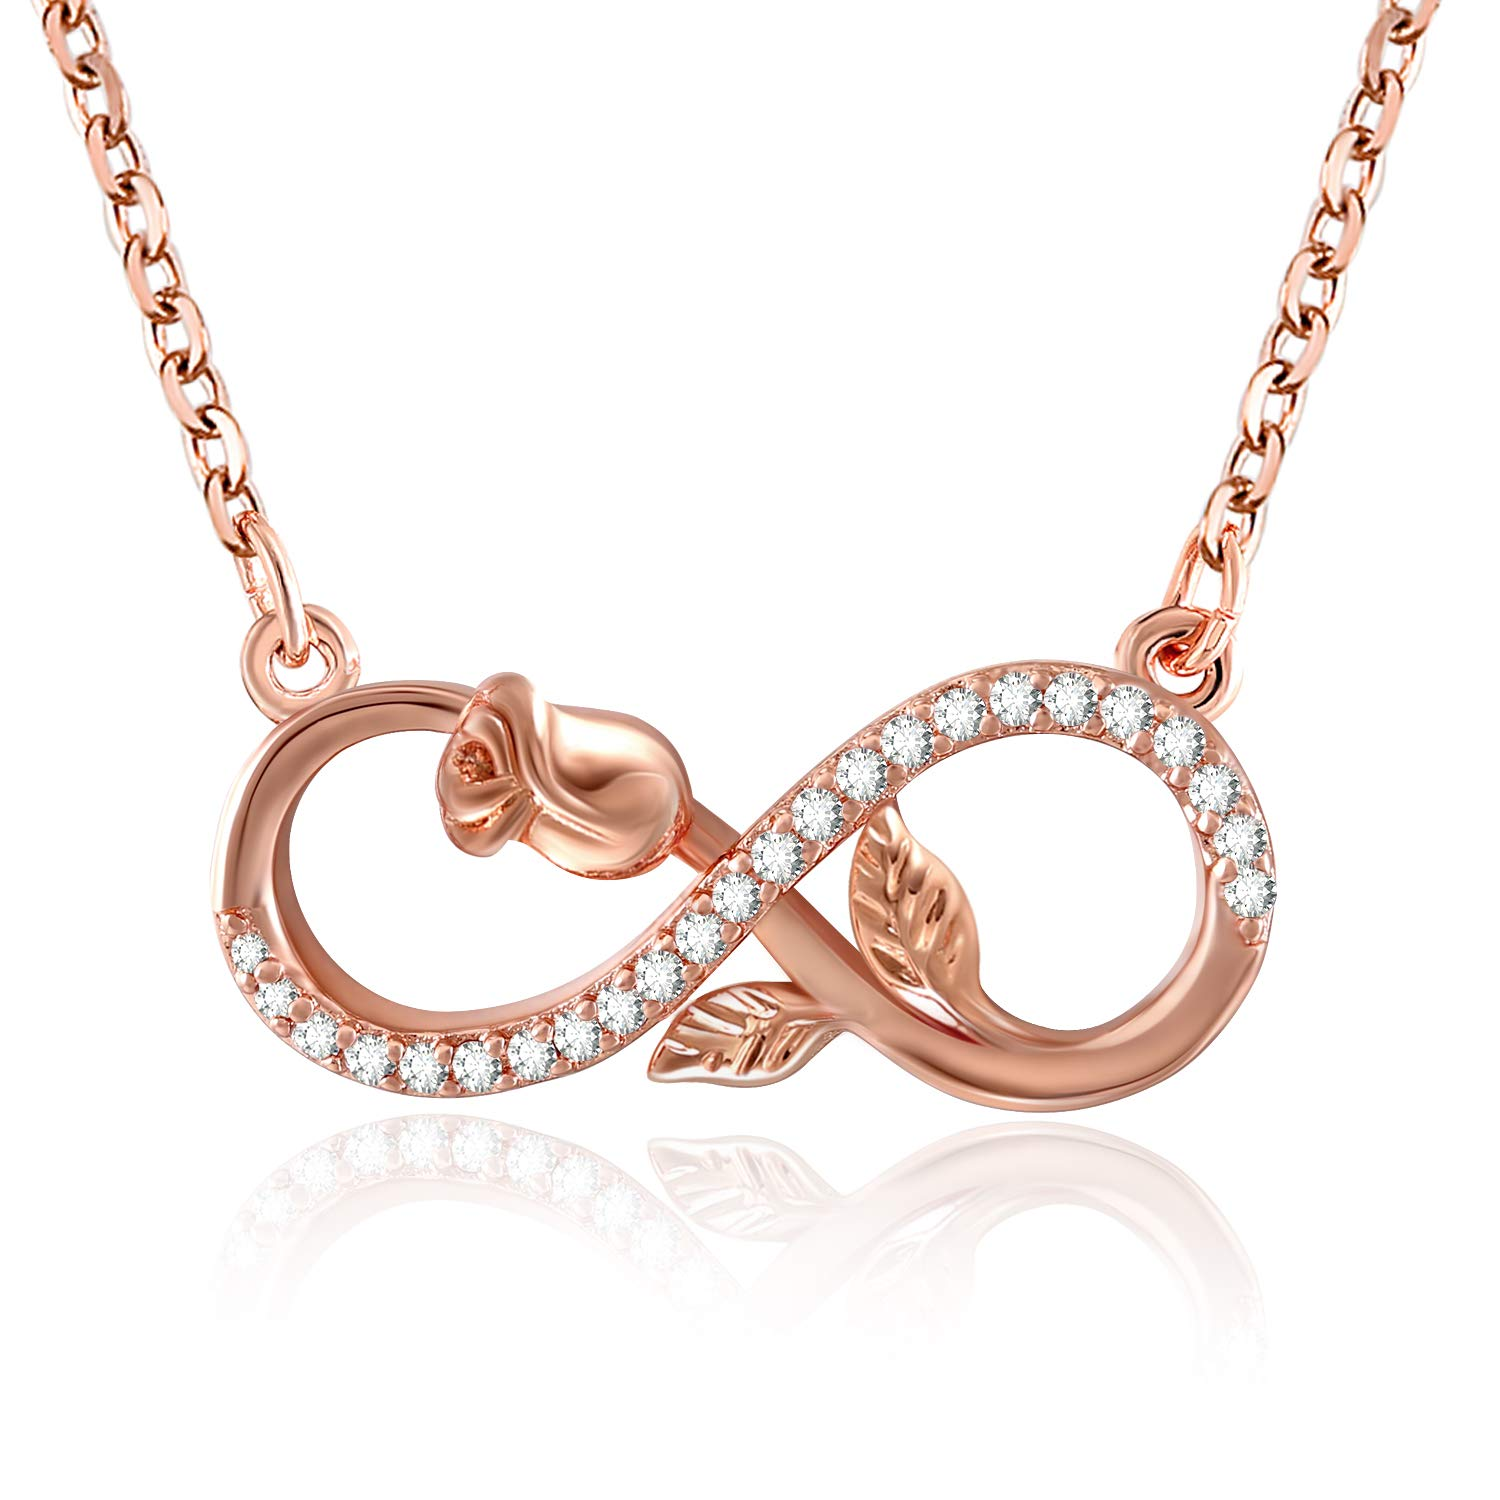 SNZM Infinity Necklace for Women Mom Flower Rose Pendant Necklace Jewelry Gifts for Mothers Day Birthday